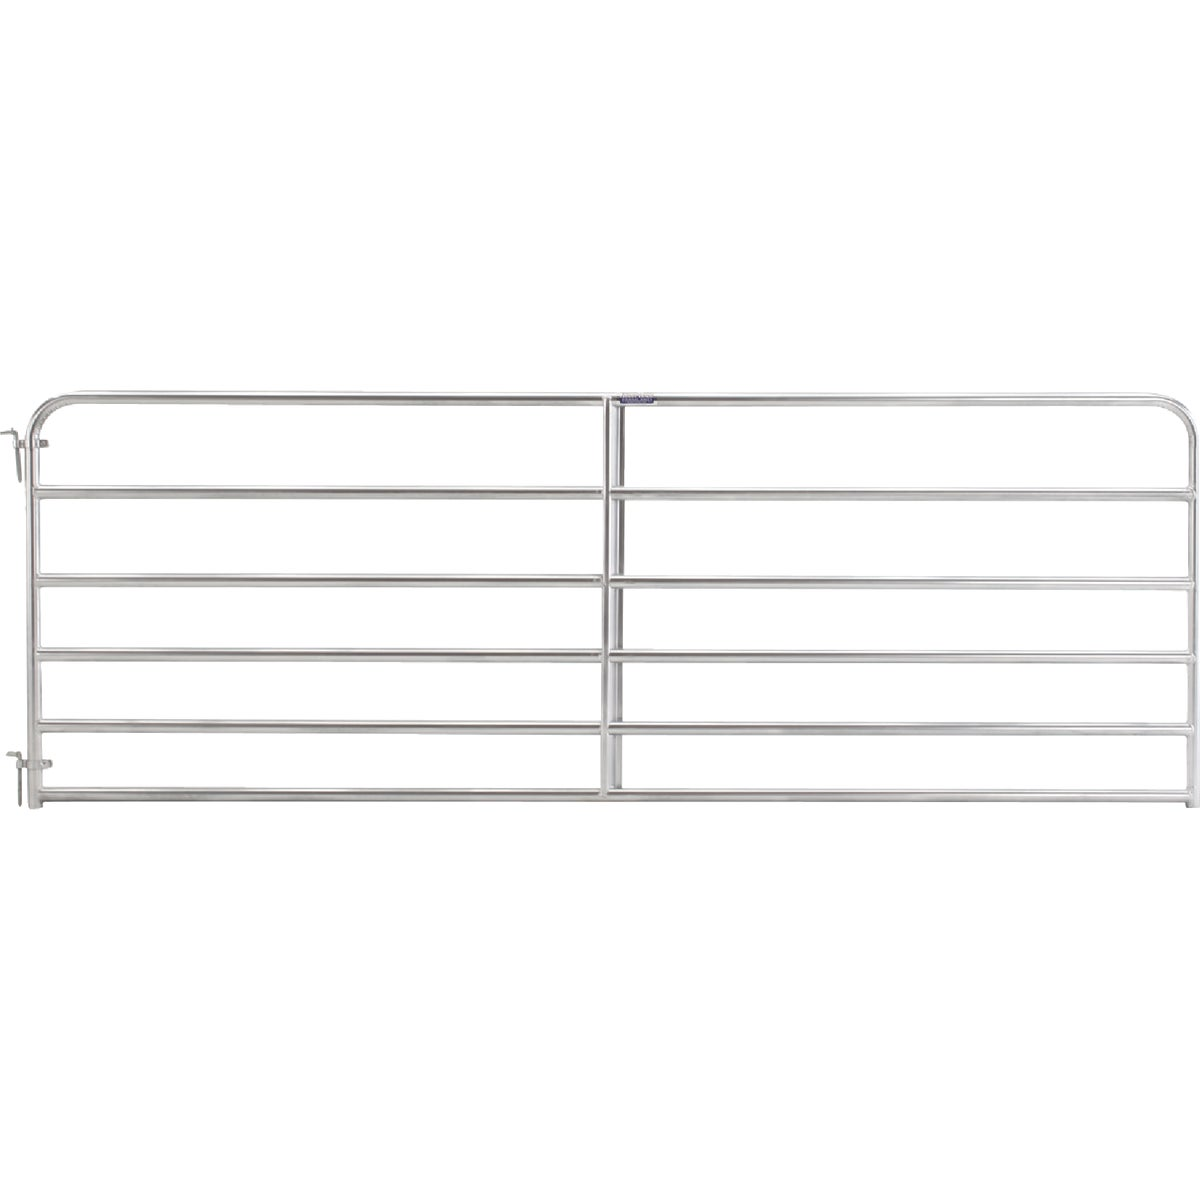 10' 19GA GLV TUBE GATE - 6GG10 by Tarter Llc